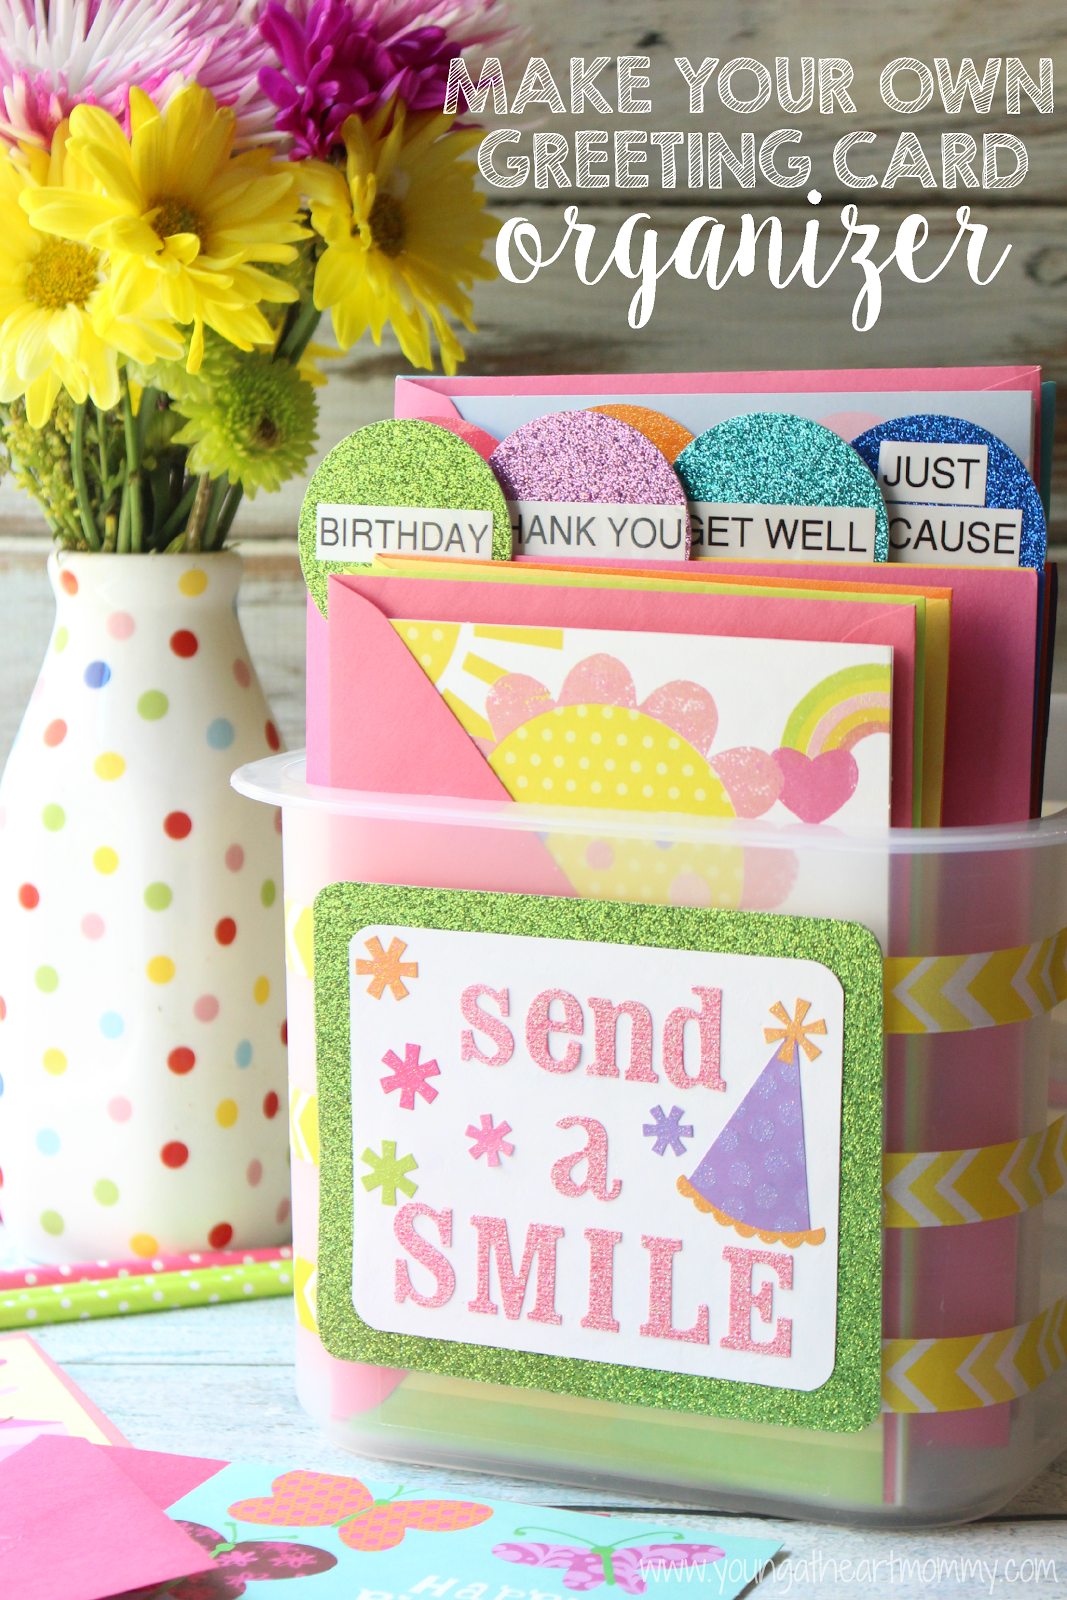 DIY Greeting Card Organizer SendSmiles Ad Cbias